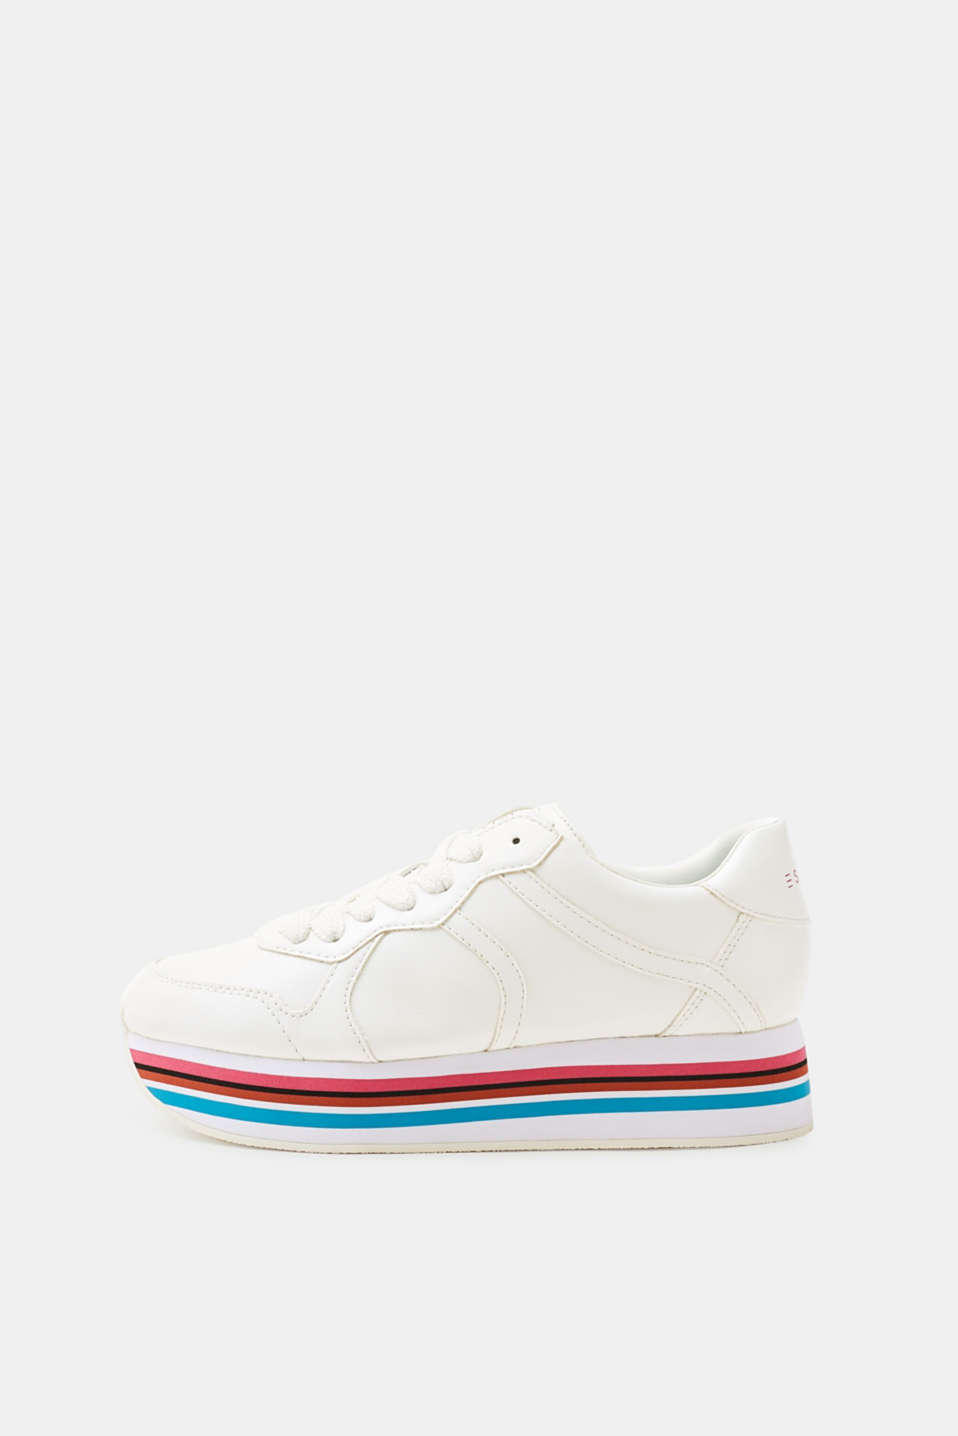 Esprit - Platform trainers in a retro style, made of faux leather